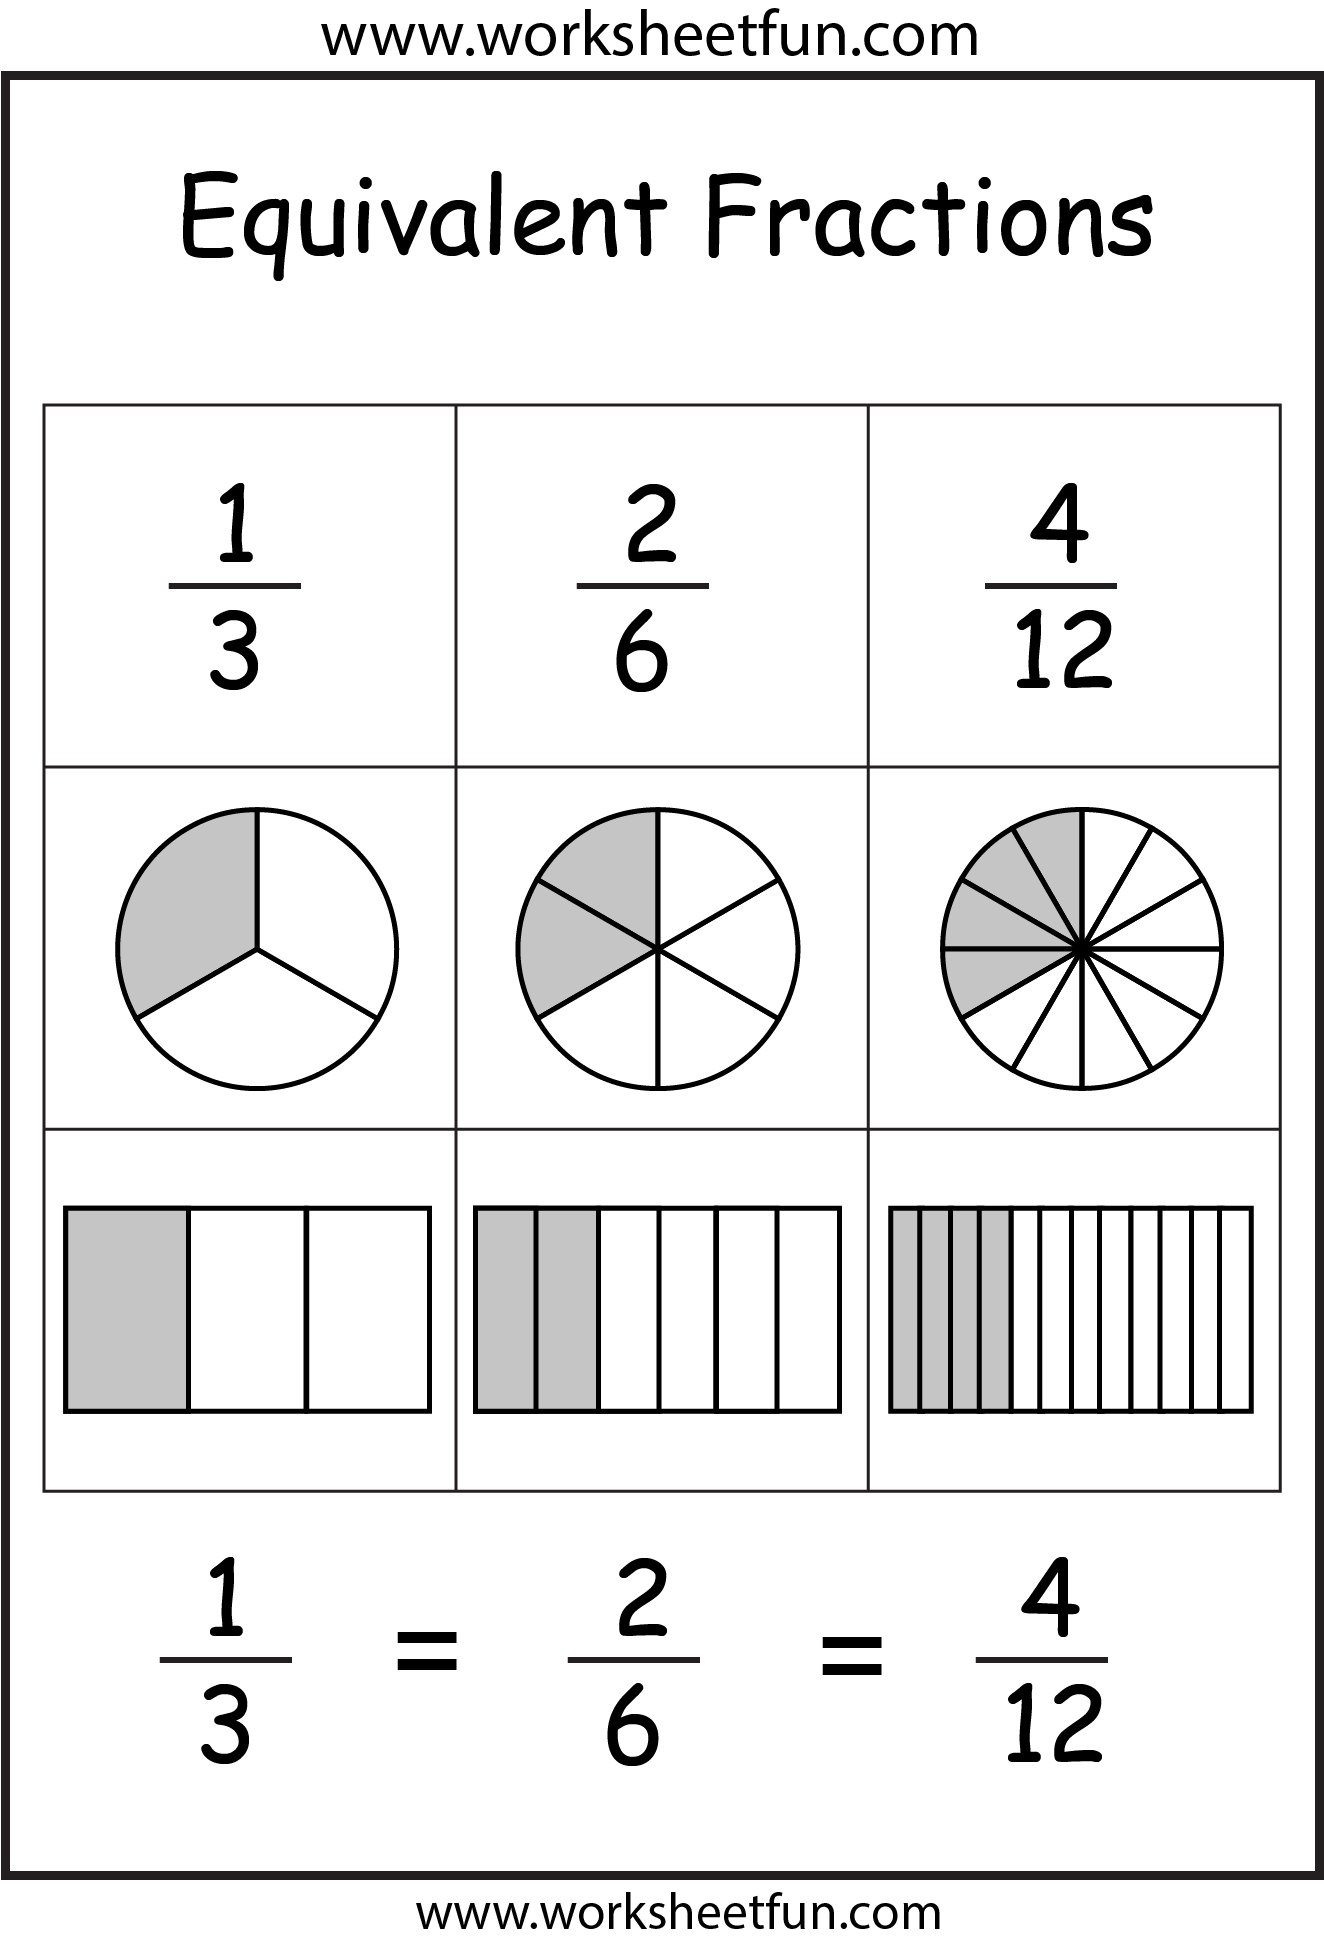 Equivalent Fractions 2 Worksheets Free Printable Worksheets Worksheetfun